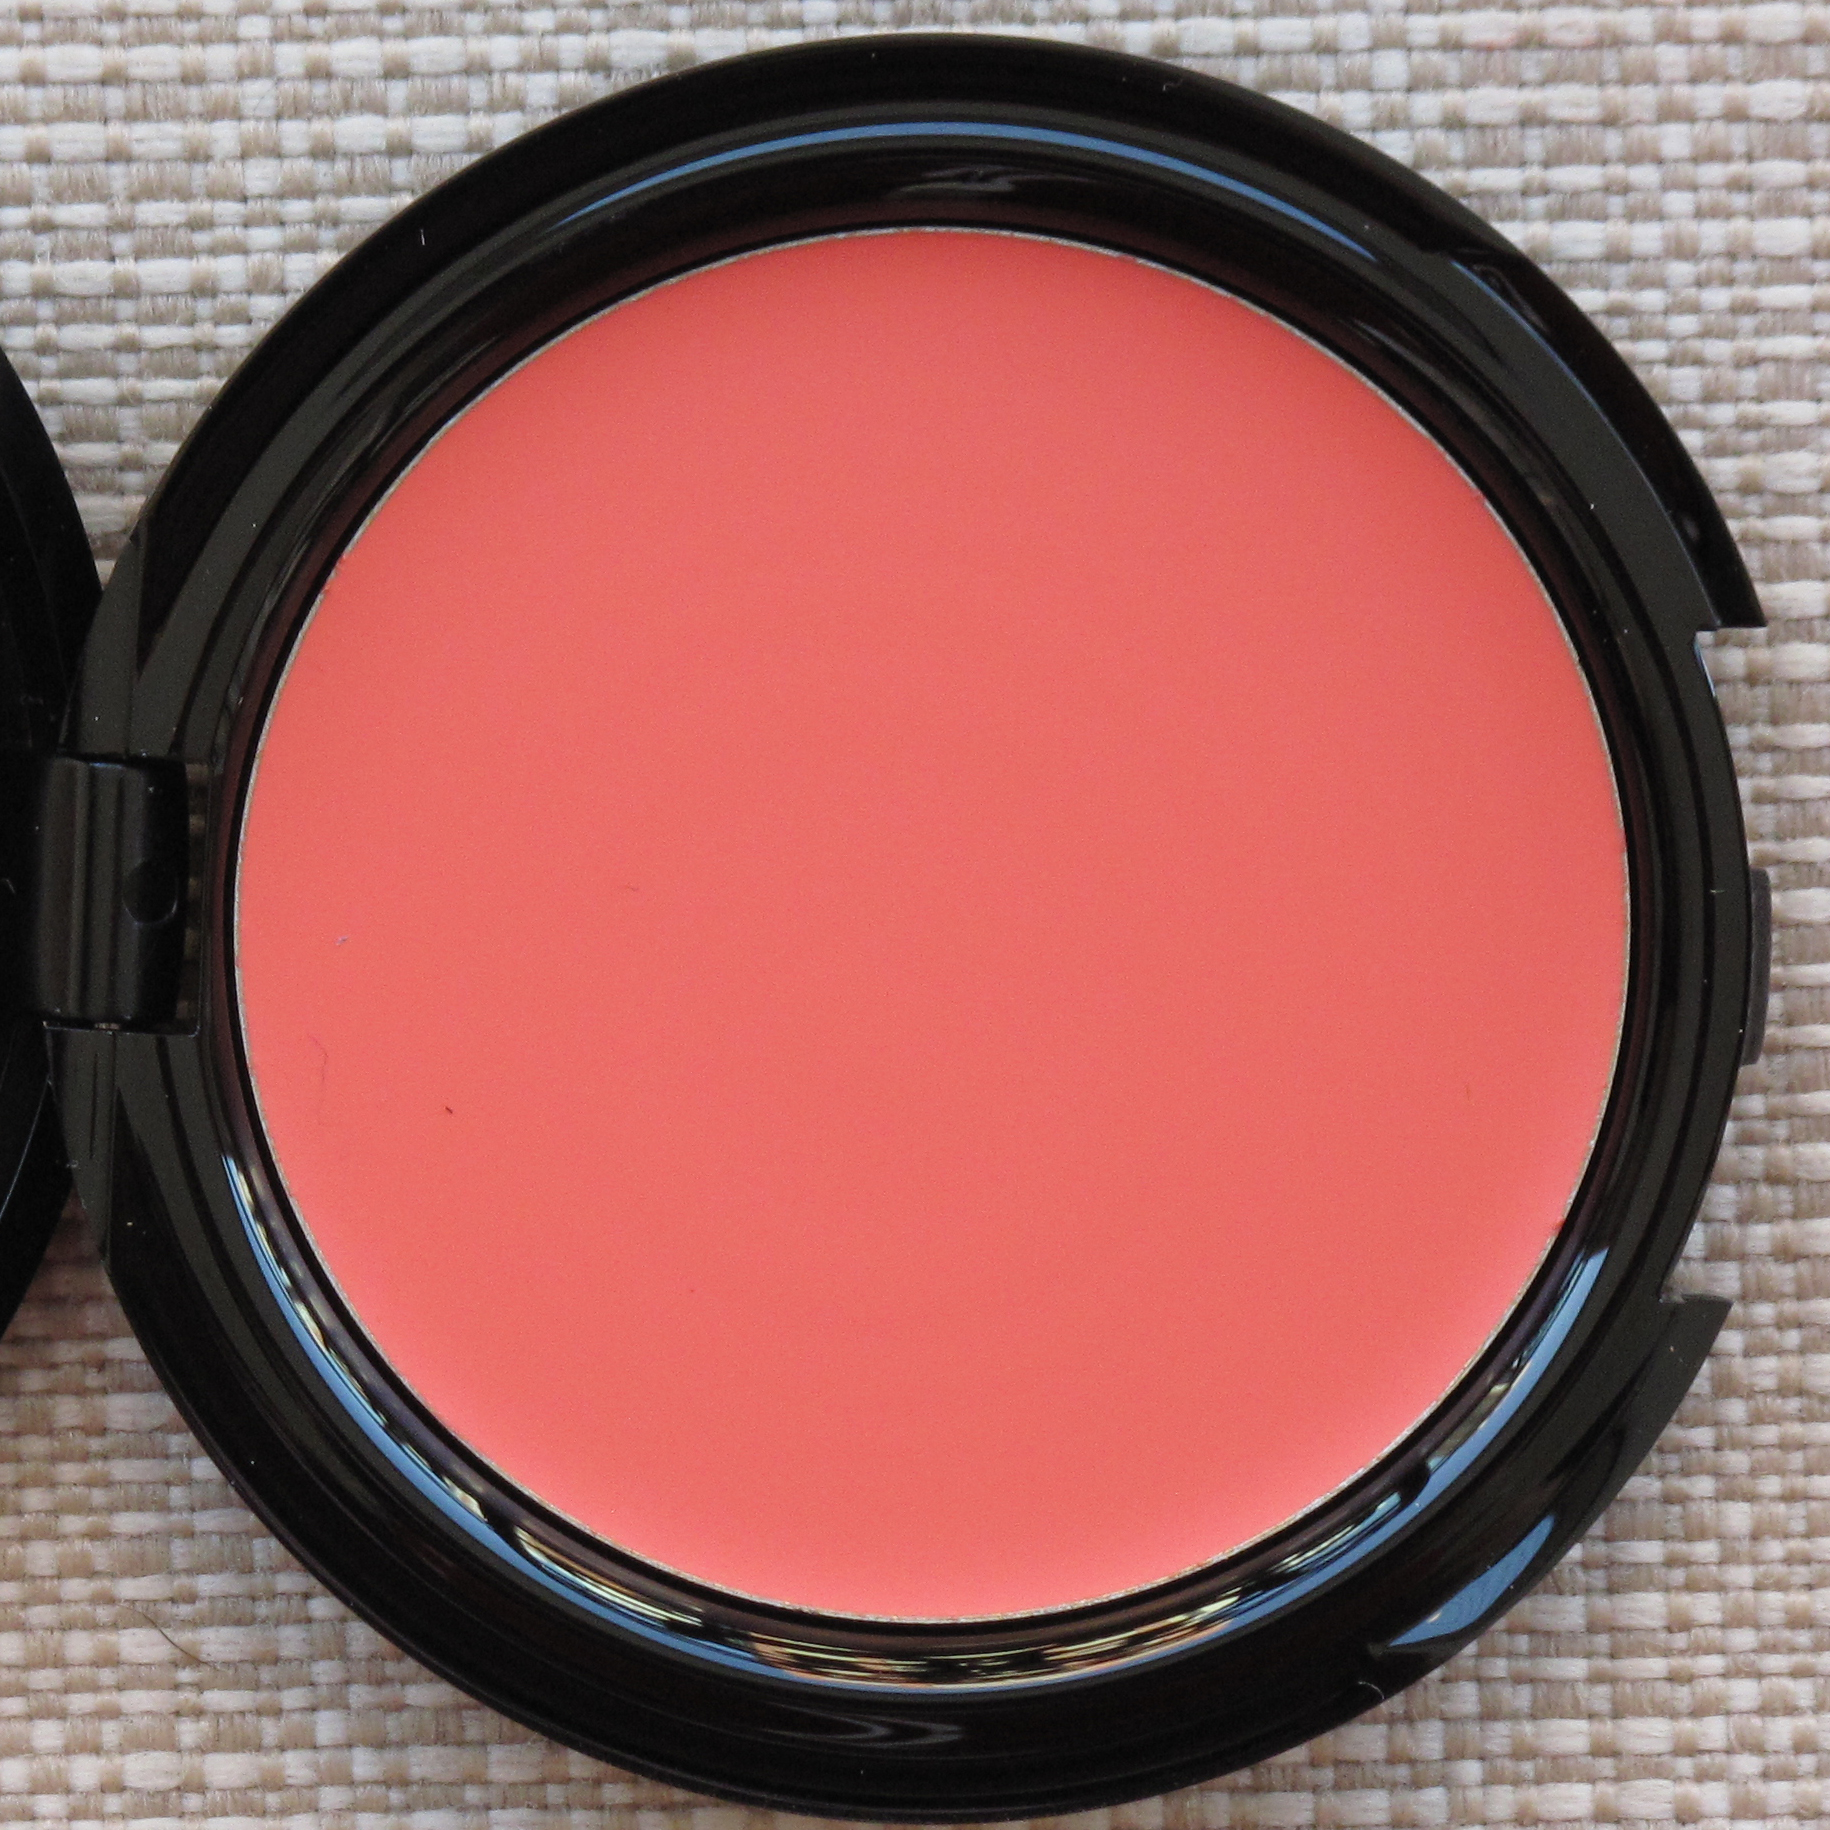 MUFE Blush HD - Cor